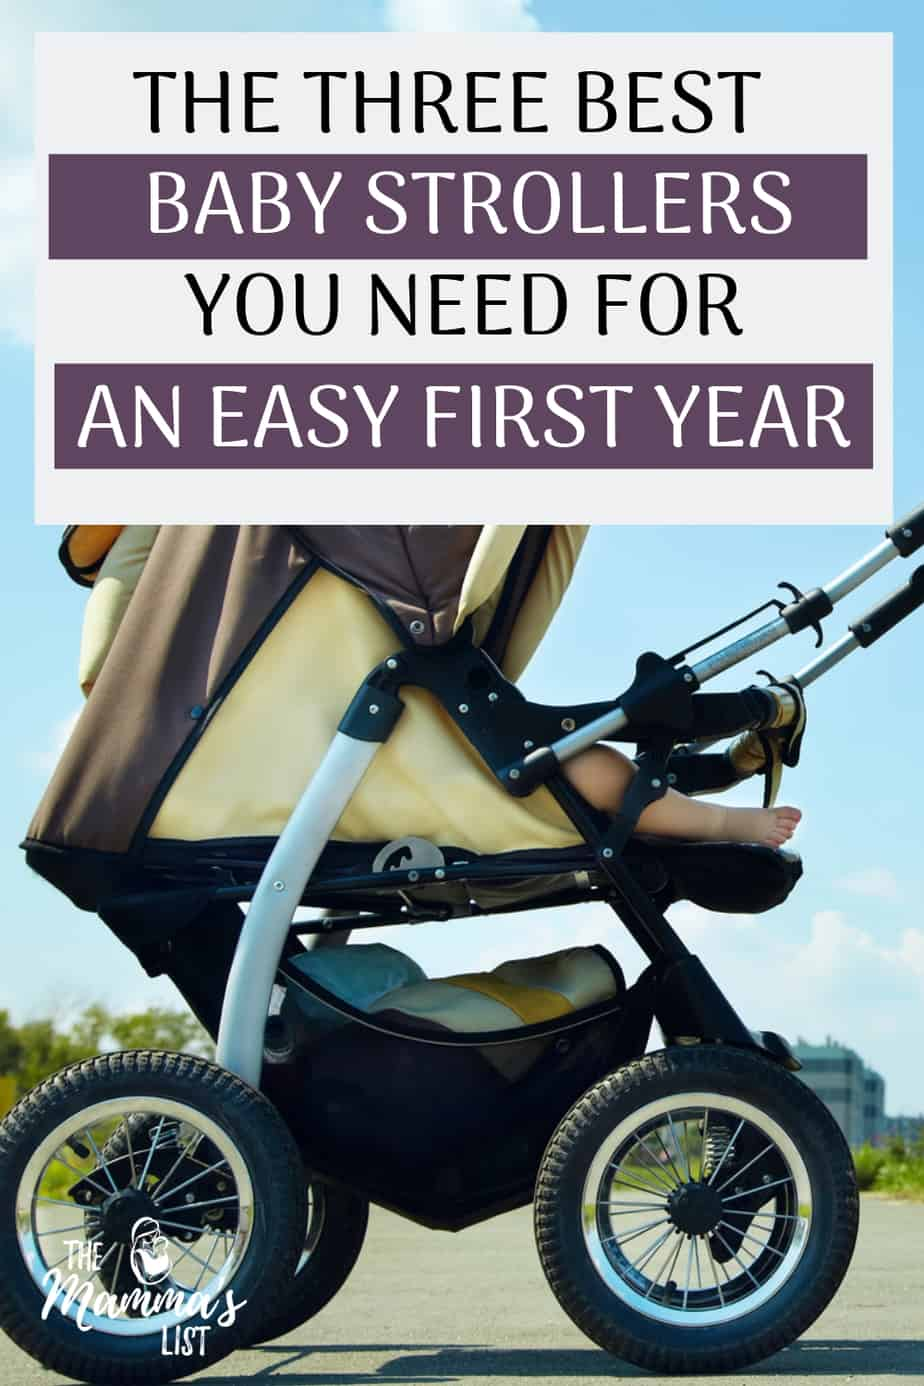 Having the right stroller can be the difference between an easy outing and stress with an infant. Check out the very best baby strollers to get you through baby's first year. A main stroller and travel stroller are a must if you'll be on the move! Click through to read more about which brands you'll love.